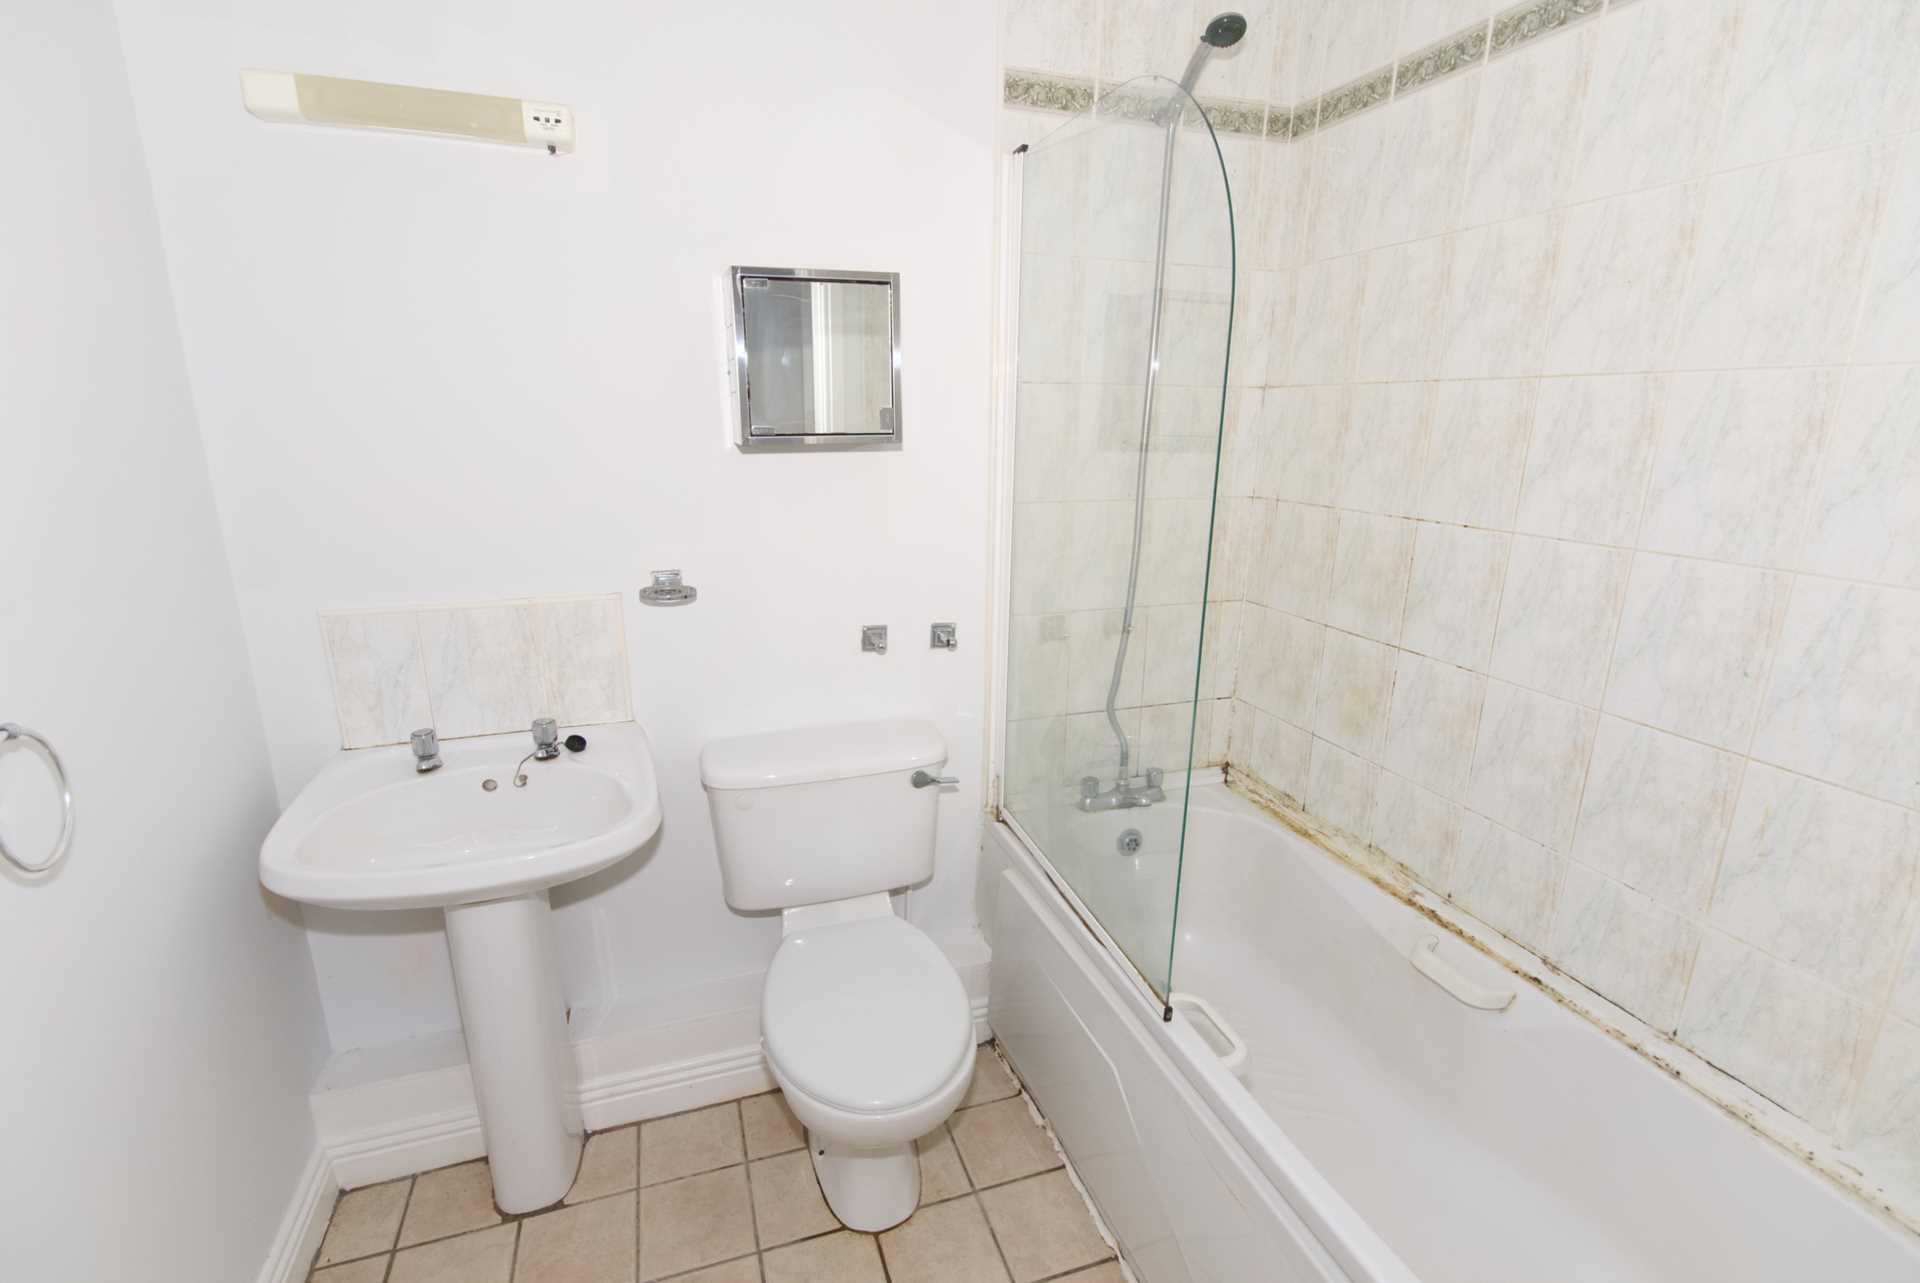 19 Carrigmore Court, Citywest, Dublin 24, Image 7